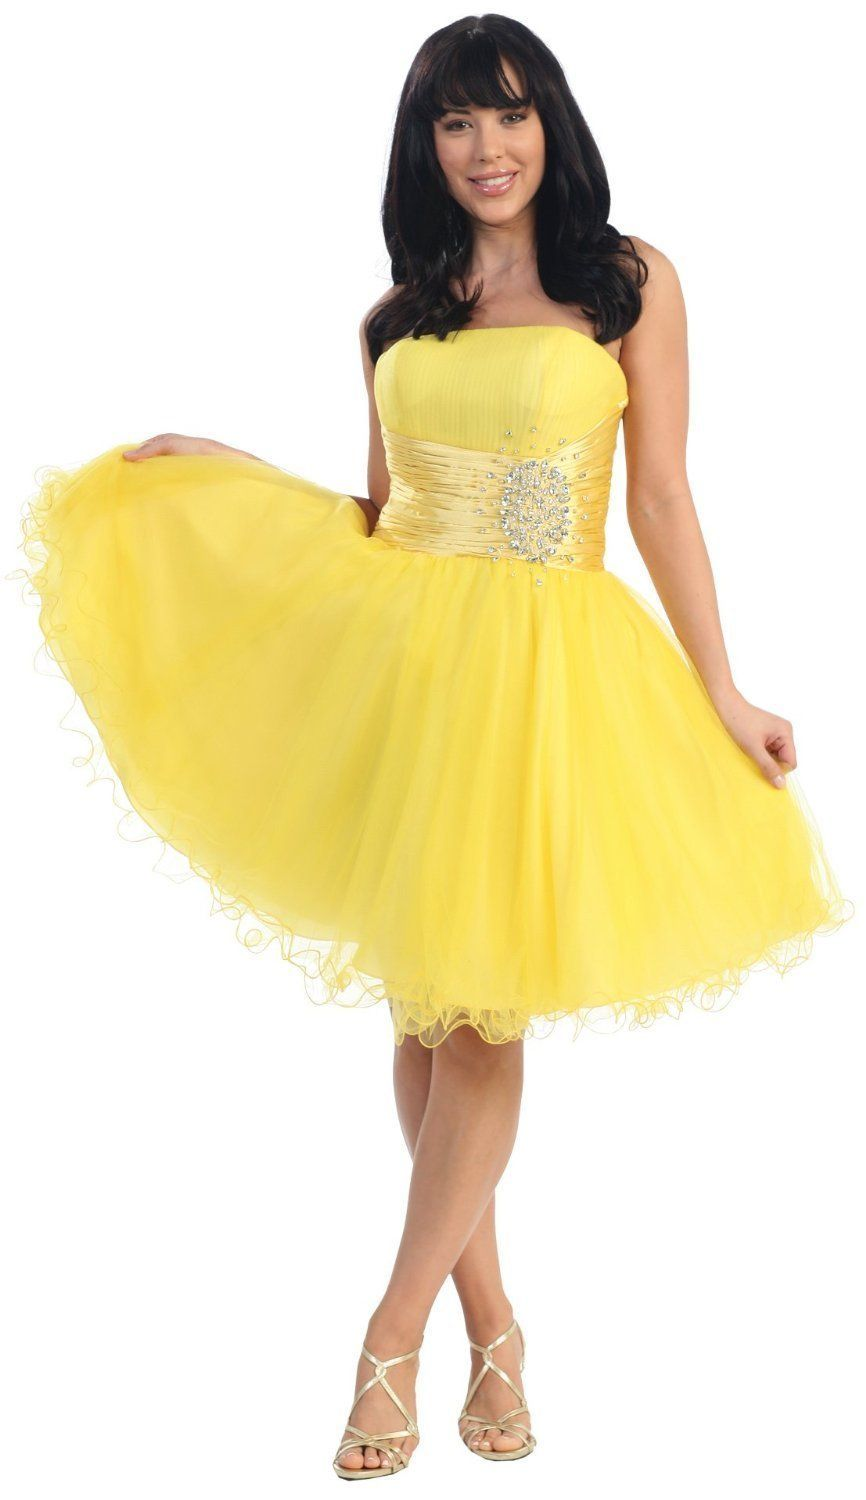 Strapless Cocktail Party Junior Prom Dress #2648 | Short Prom ...